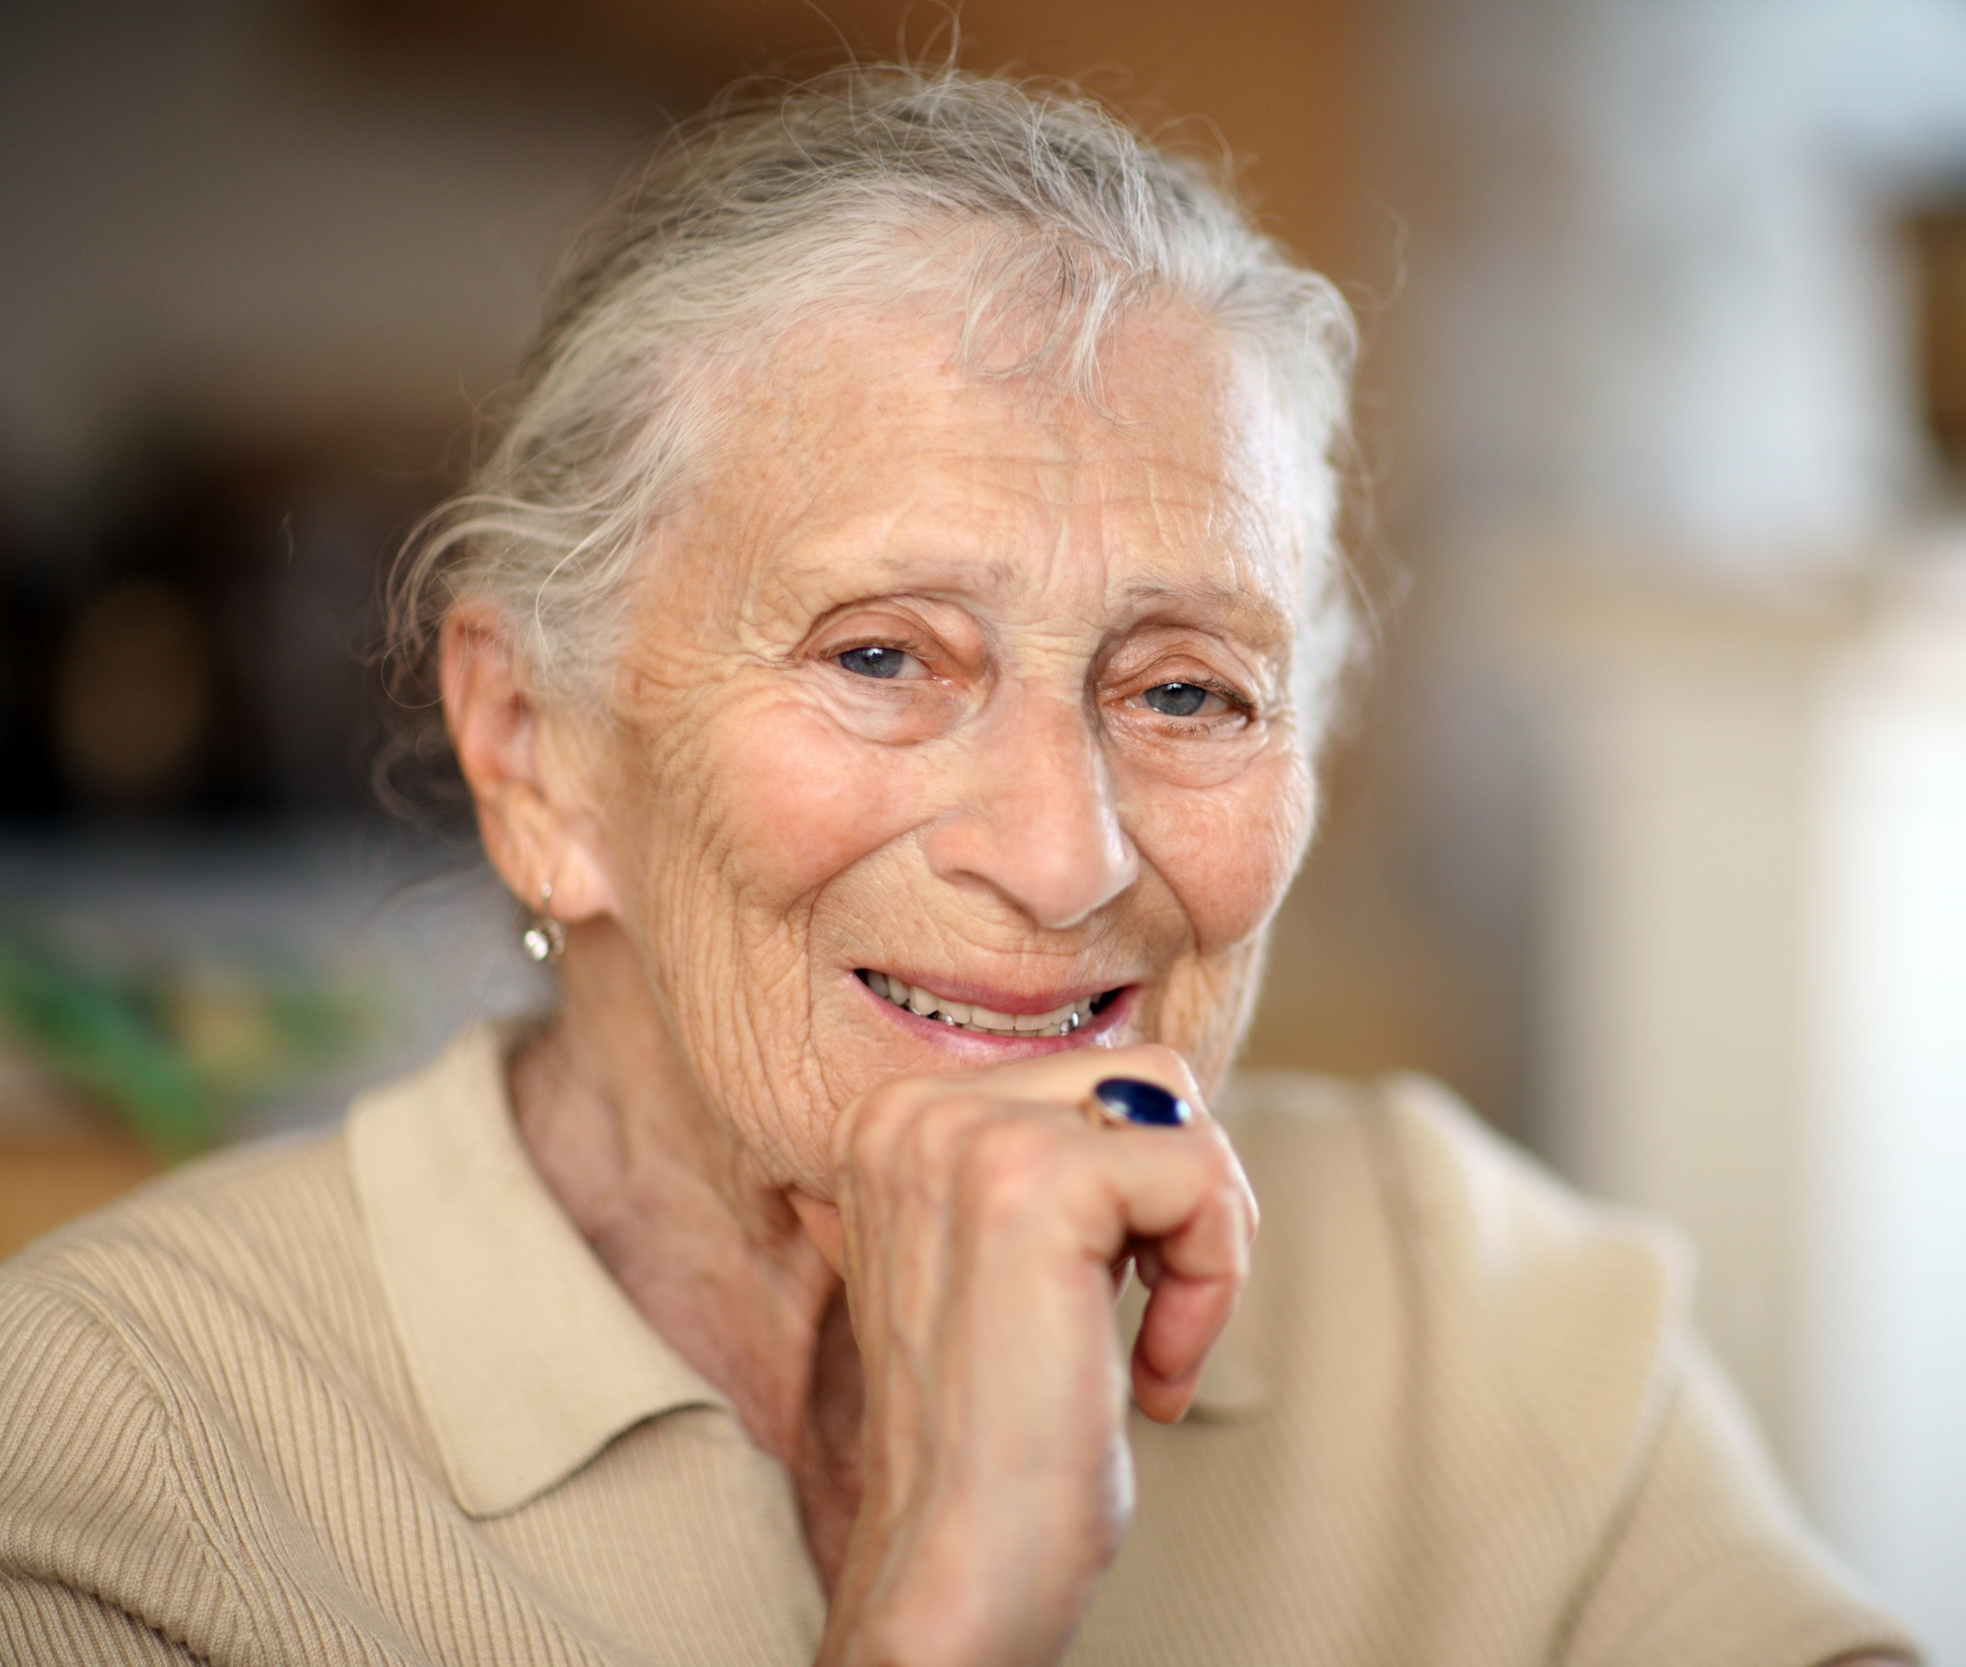 Senior woman with her hand at her chin